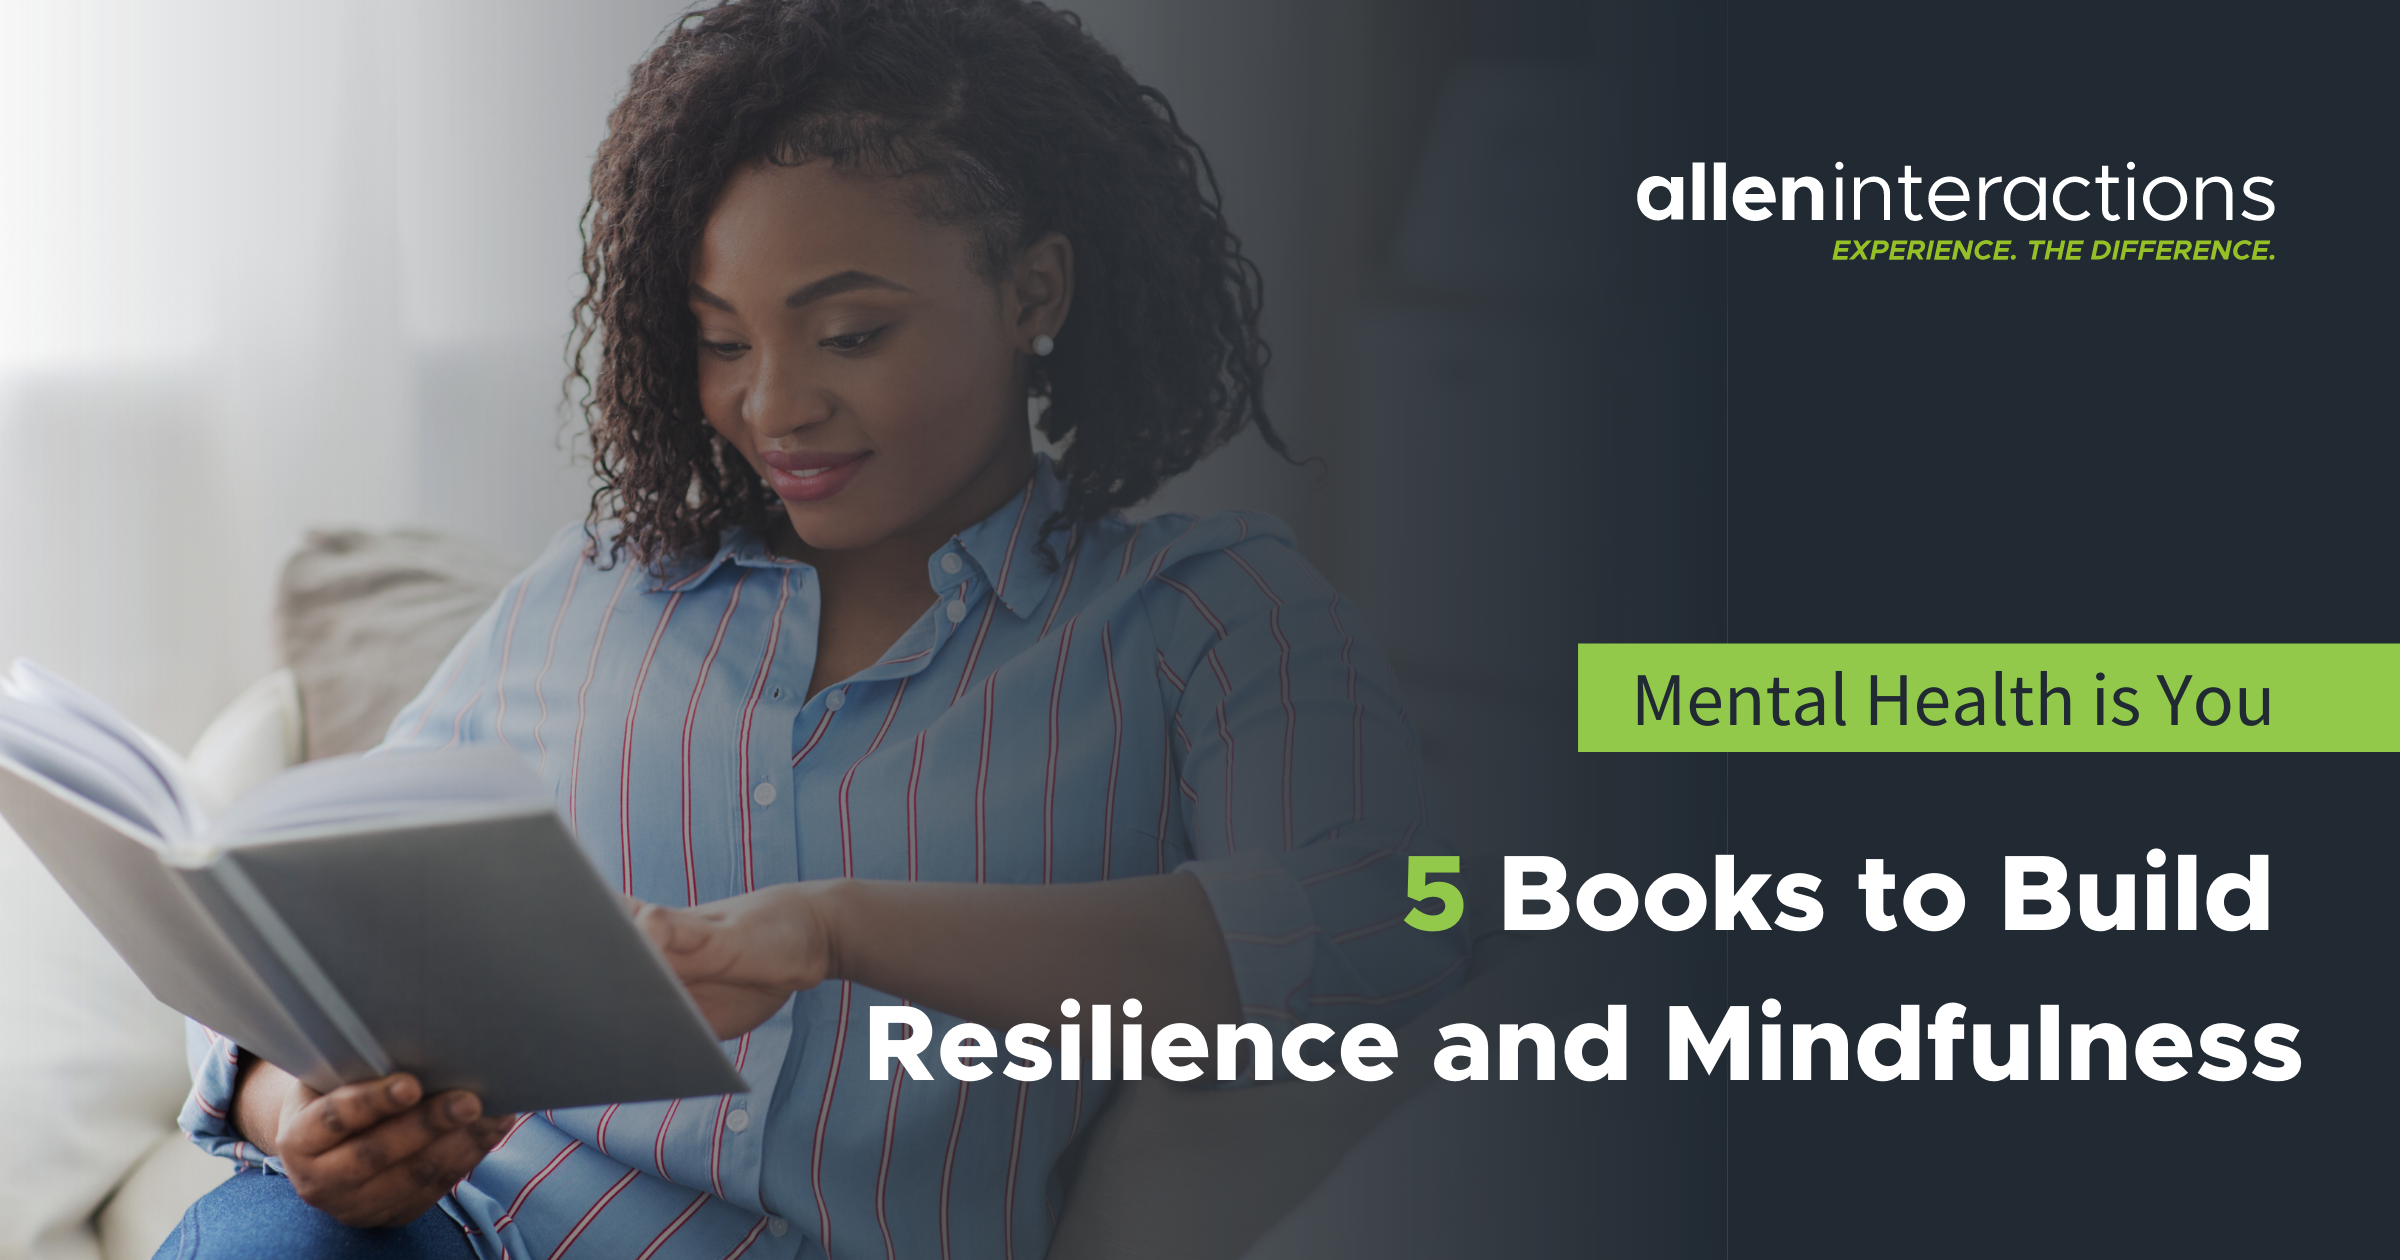 Mental Health is You: 5 Books to Build Resilience and Mindfulness